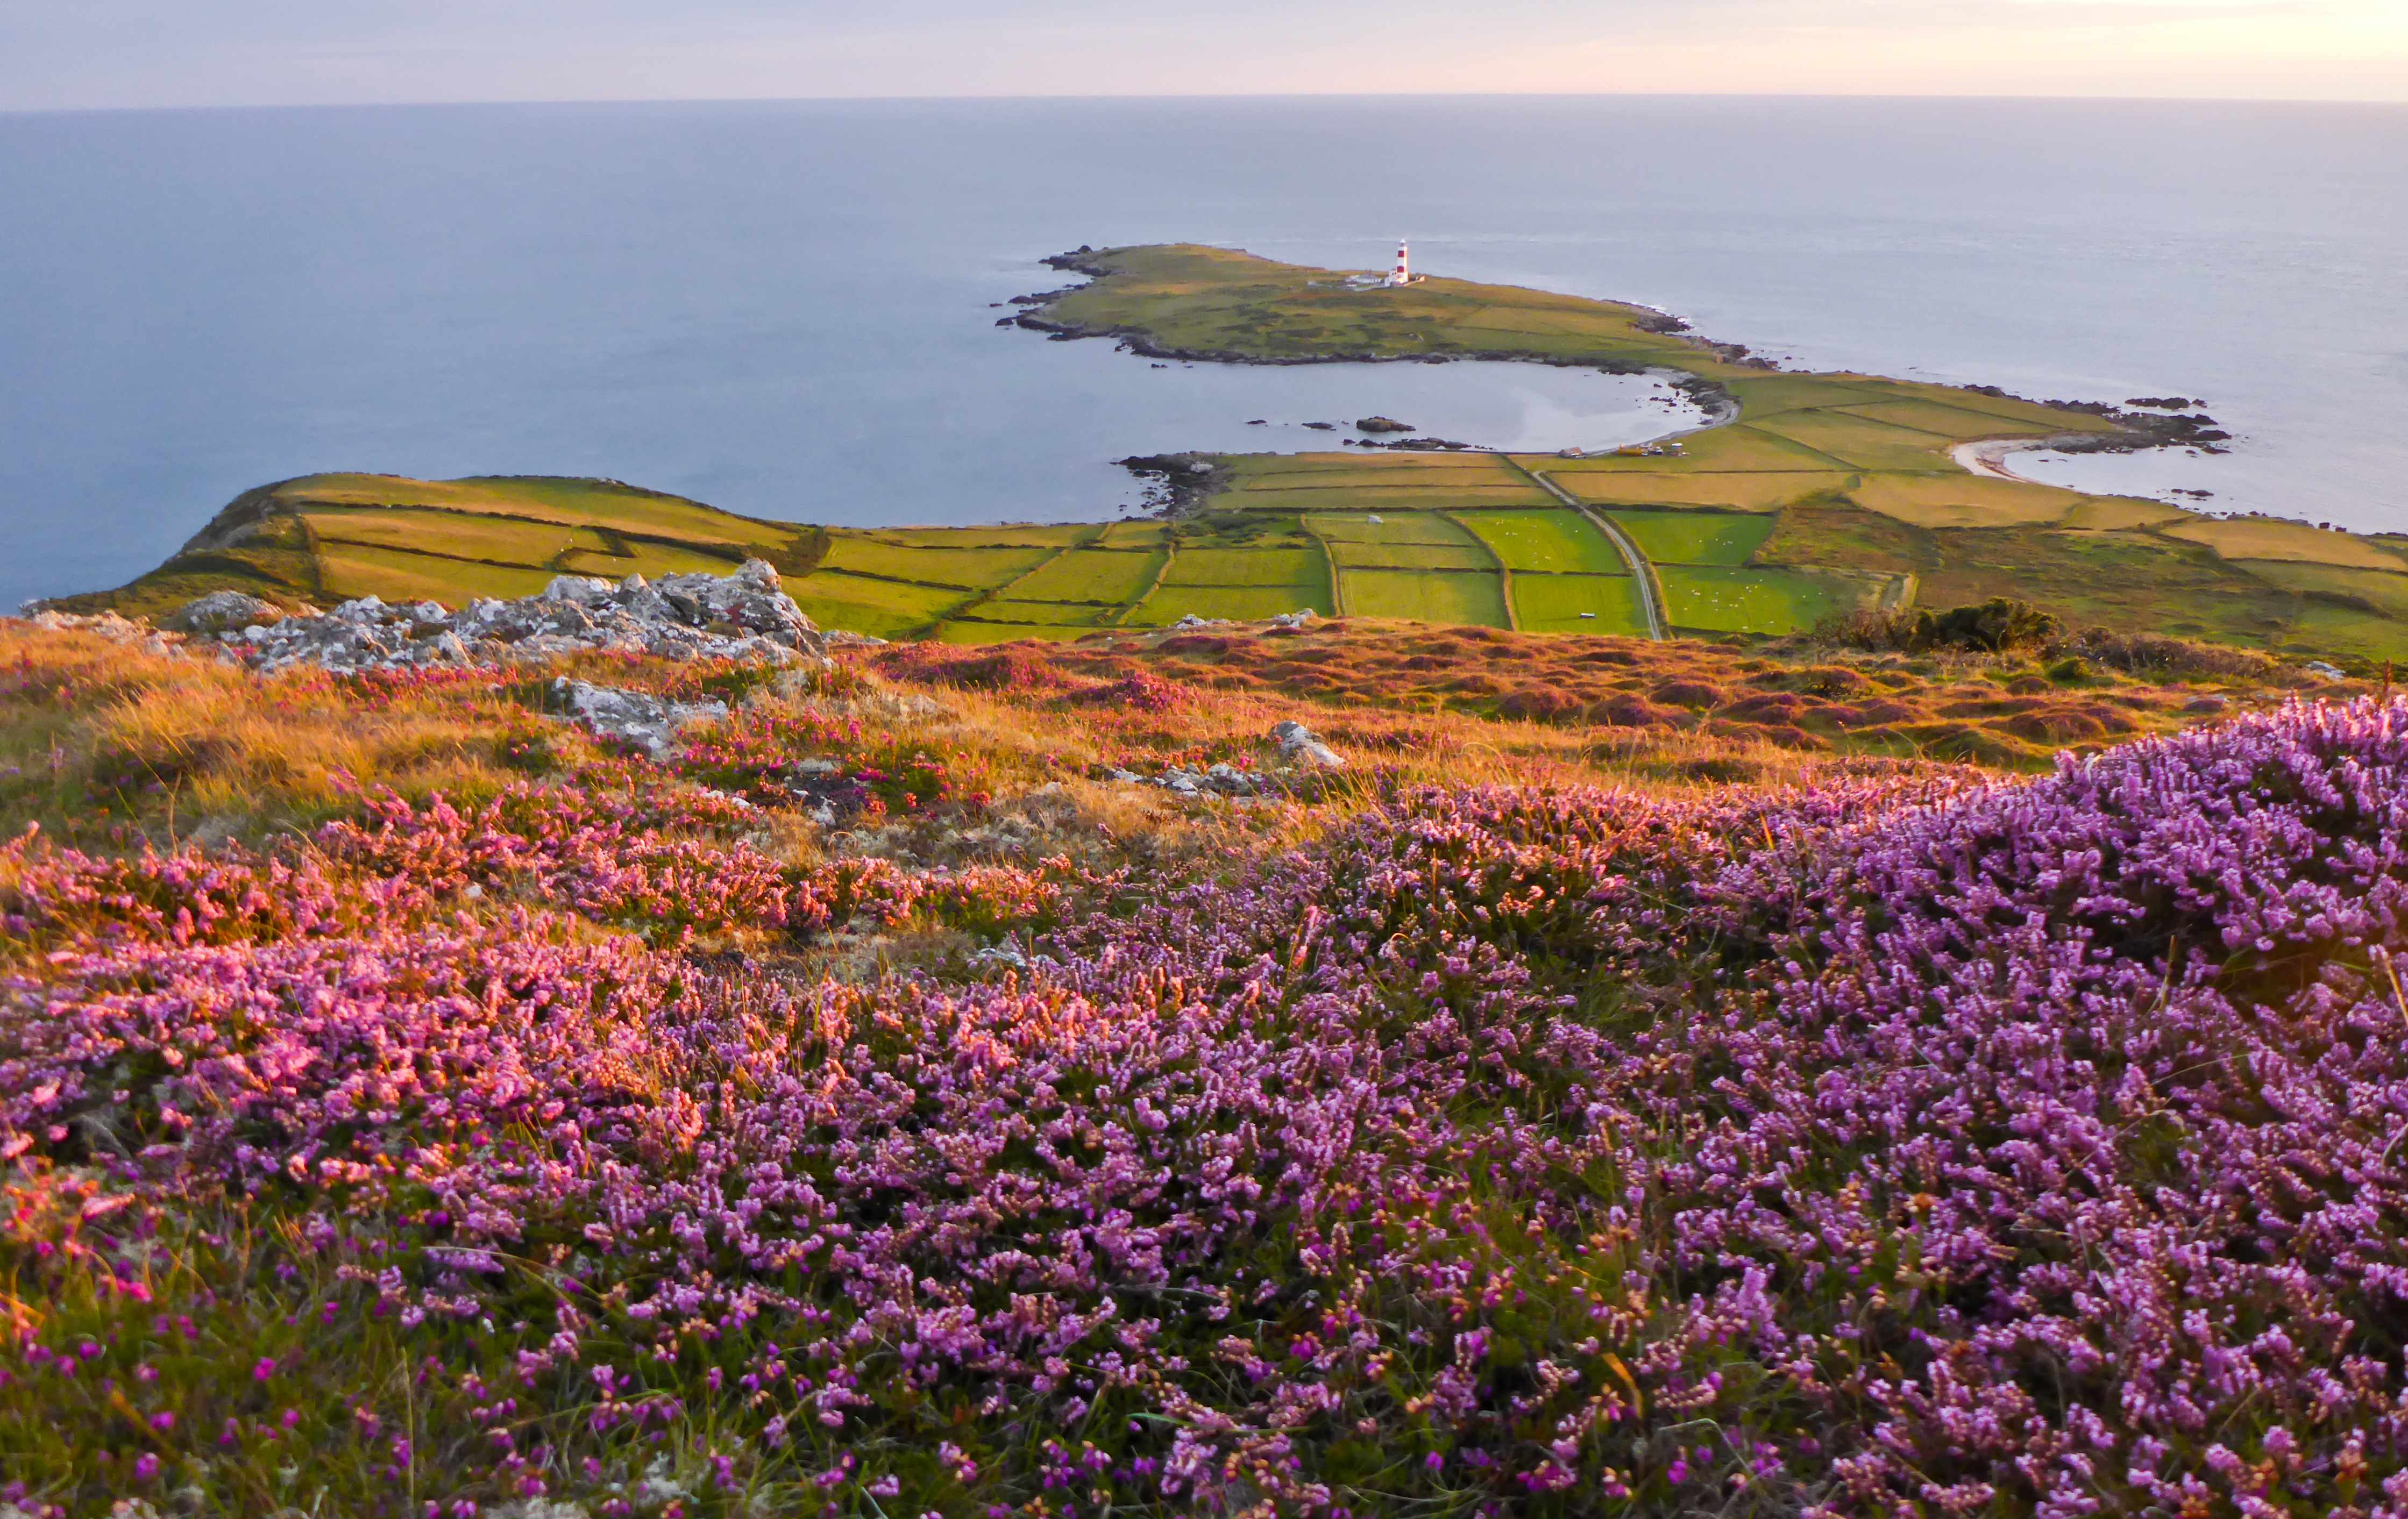 Come late summer, the 170-foot high mountain is covered in the purple-pink colour of ling heather. In some areas of the island this species makes up an important coastal habitat known as maritime heath. © Ben Porter